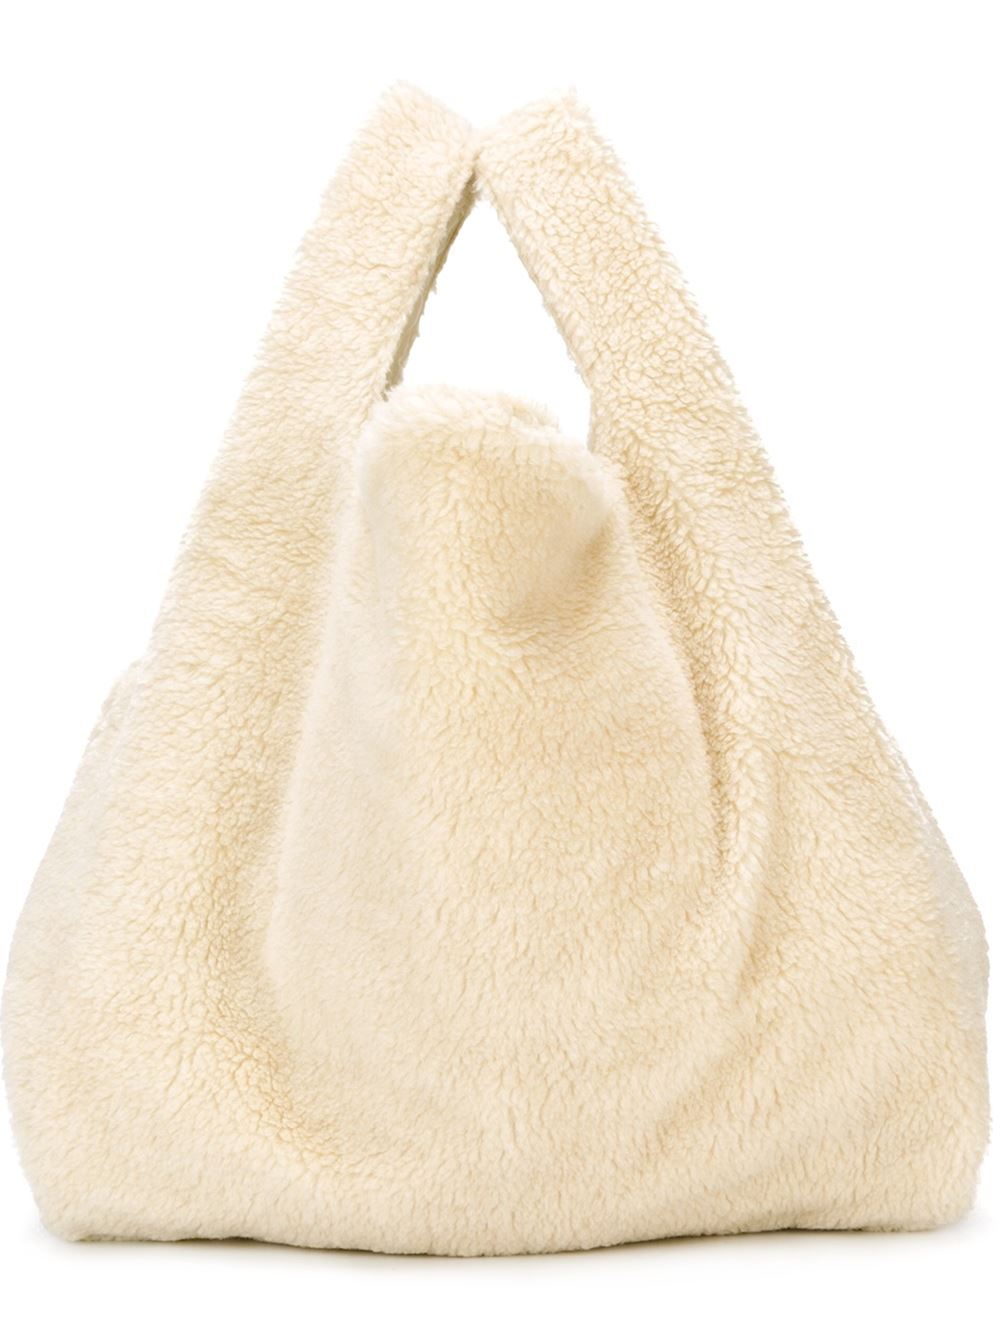 faux shearling shopper tote, £112.45, Mm6 Maison Margiela. www.farfetch.com